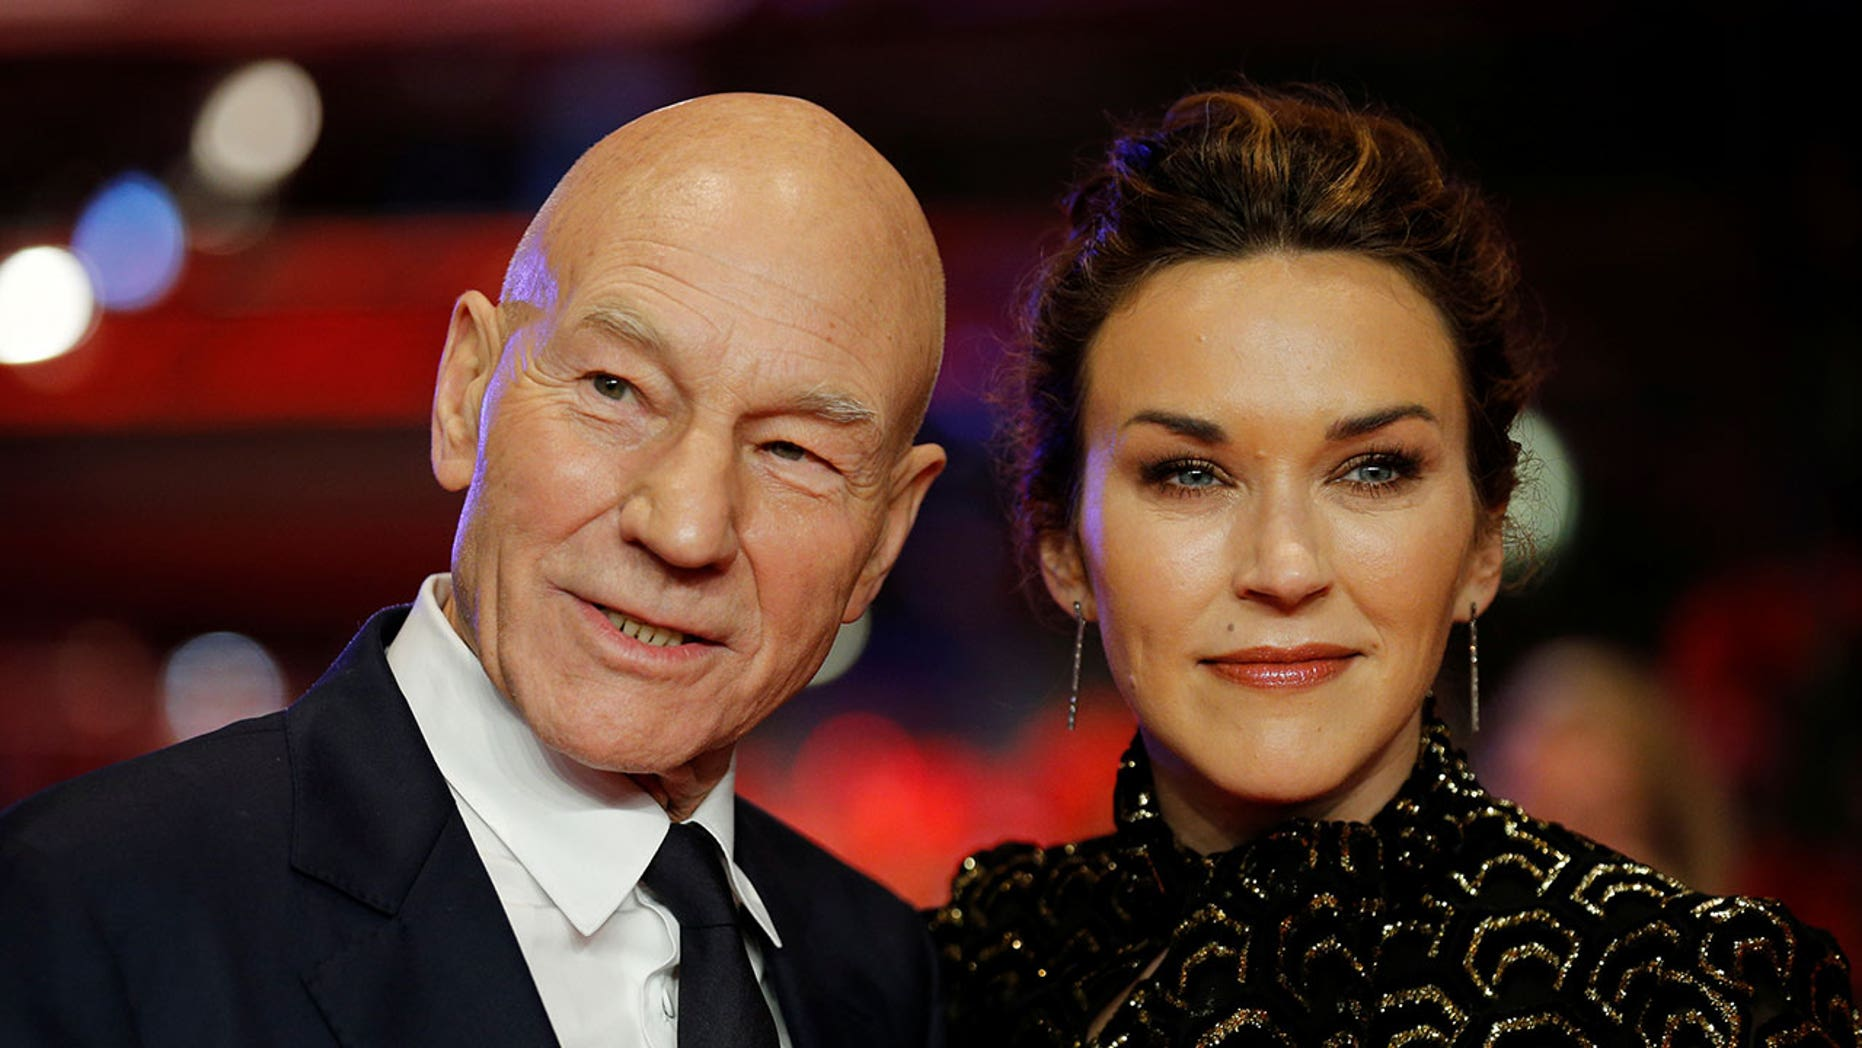 Patrick Stewart's wife, Sunny Ozell, said her husband ate the best pizza of his life at Pepe's in New Haven, Conn.